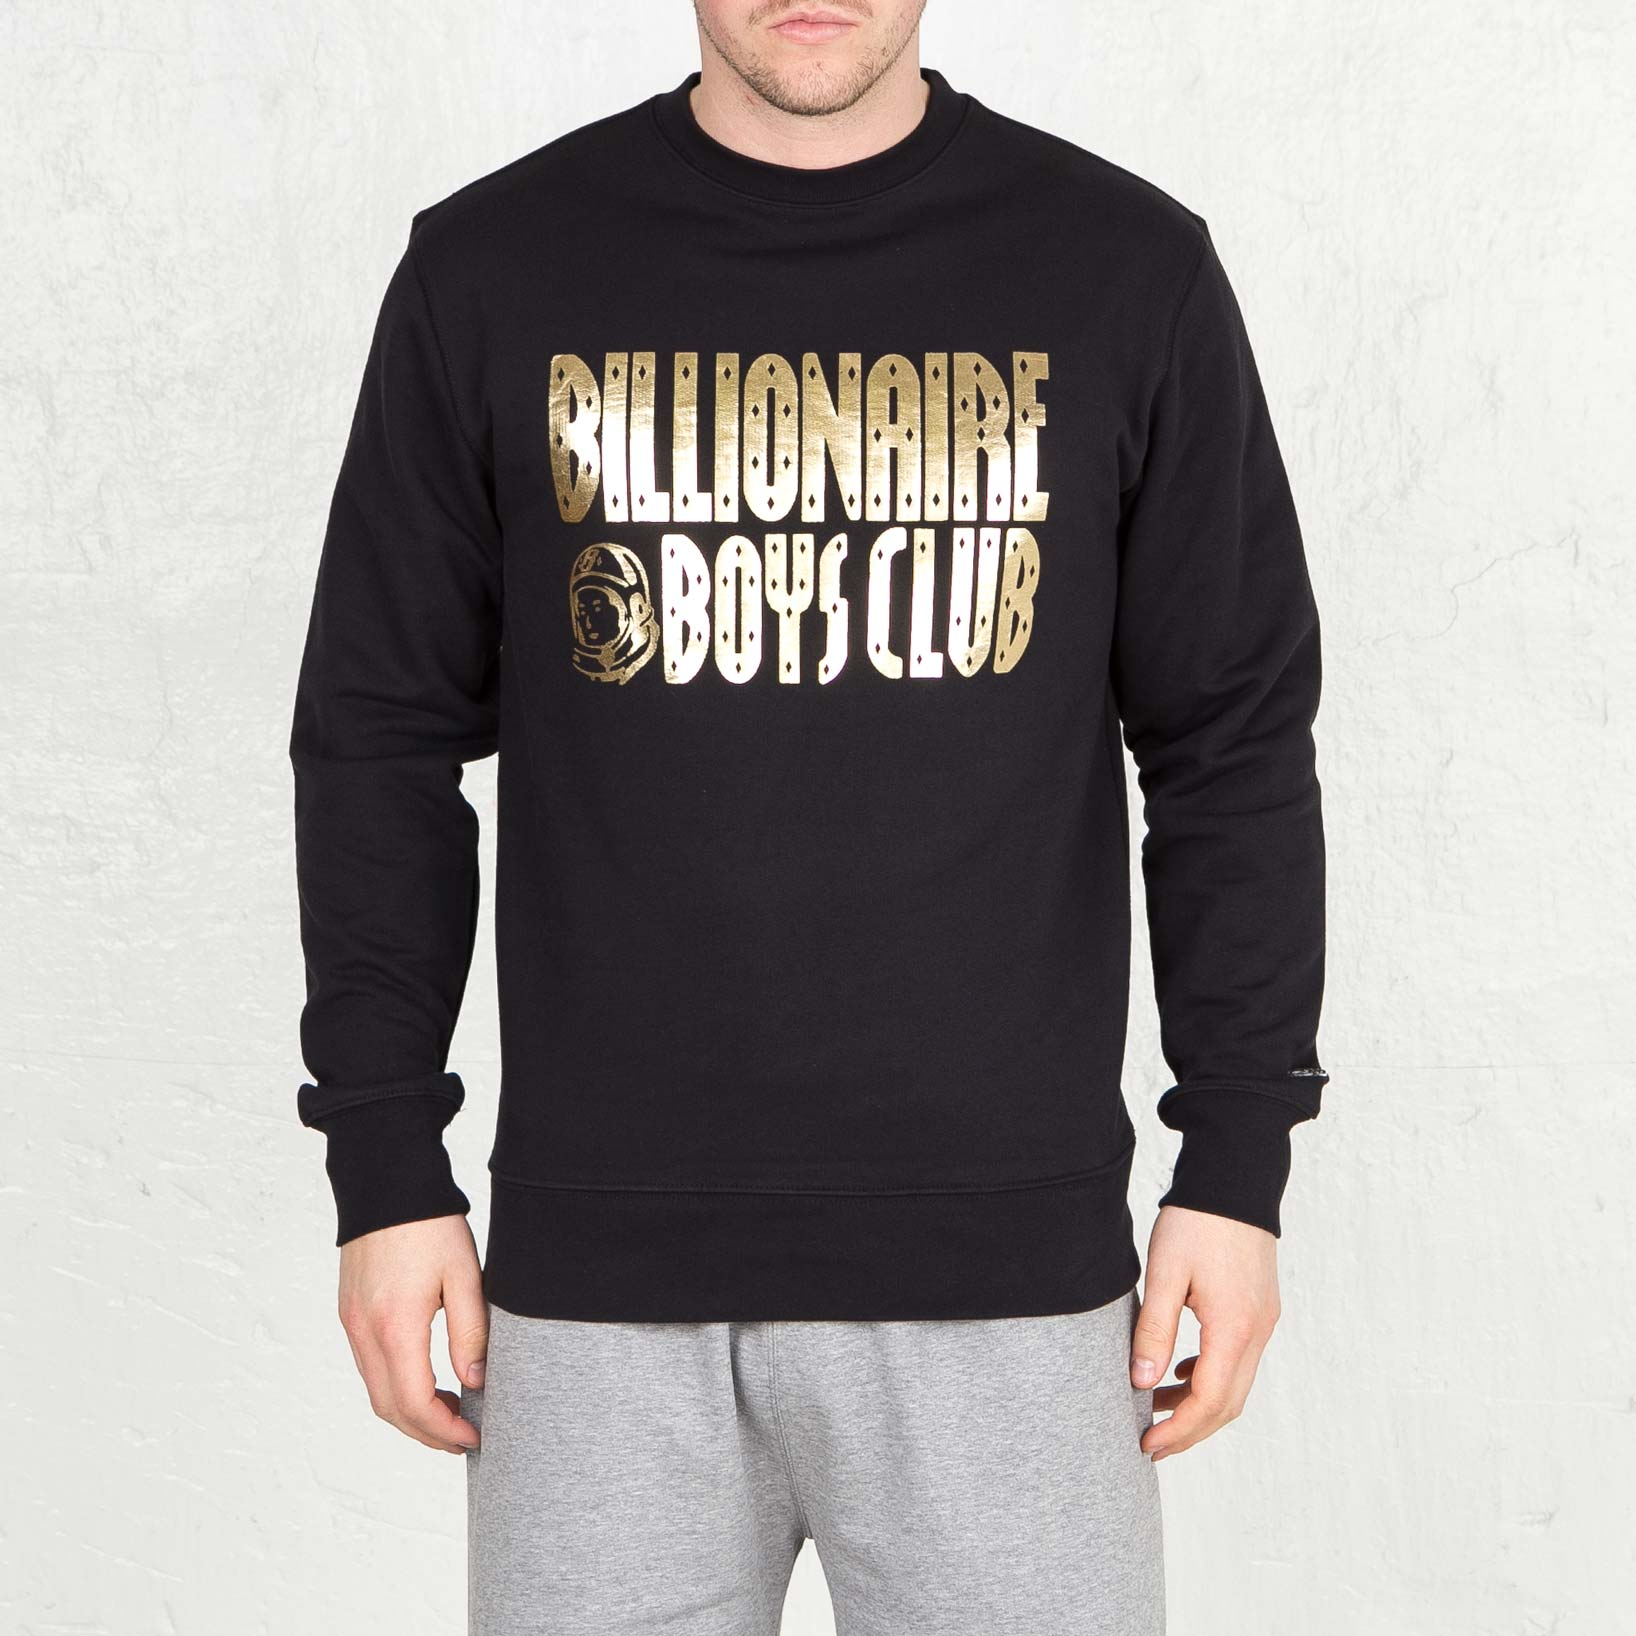 Free Shipping Enjoy Purchase Cheap logo sneakers - Black Billionaire Boys Club Low Shipping Online Extremely Sale Online YmbqH9